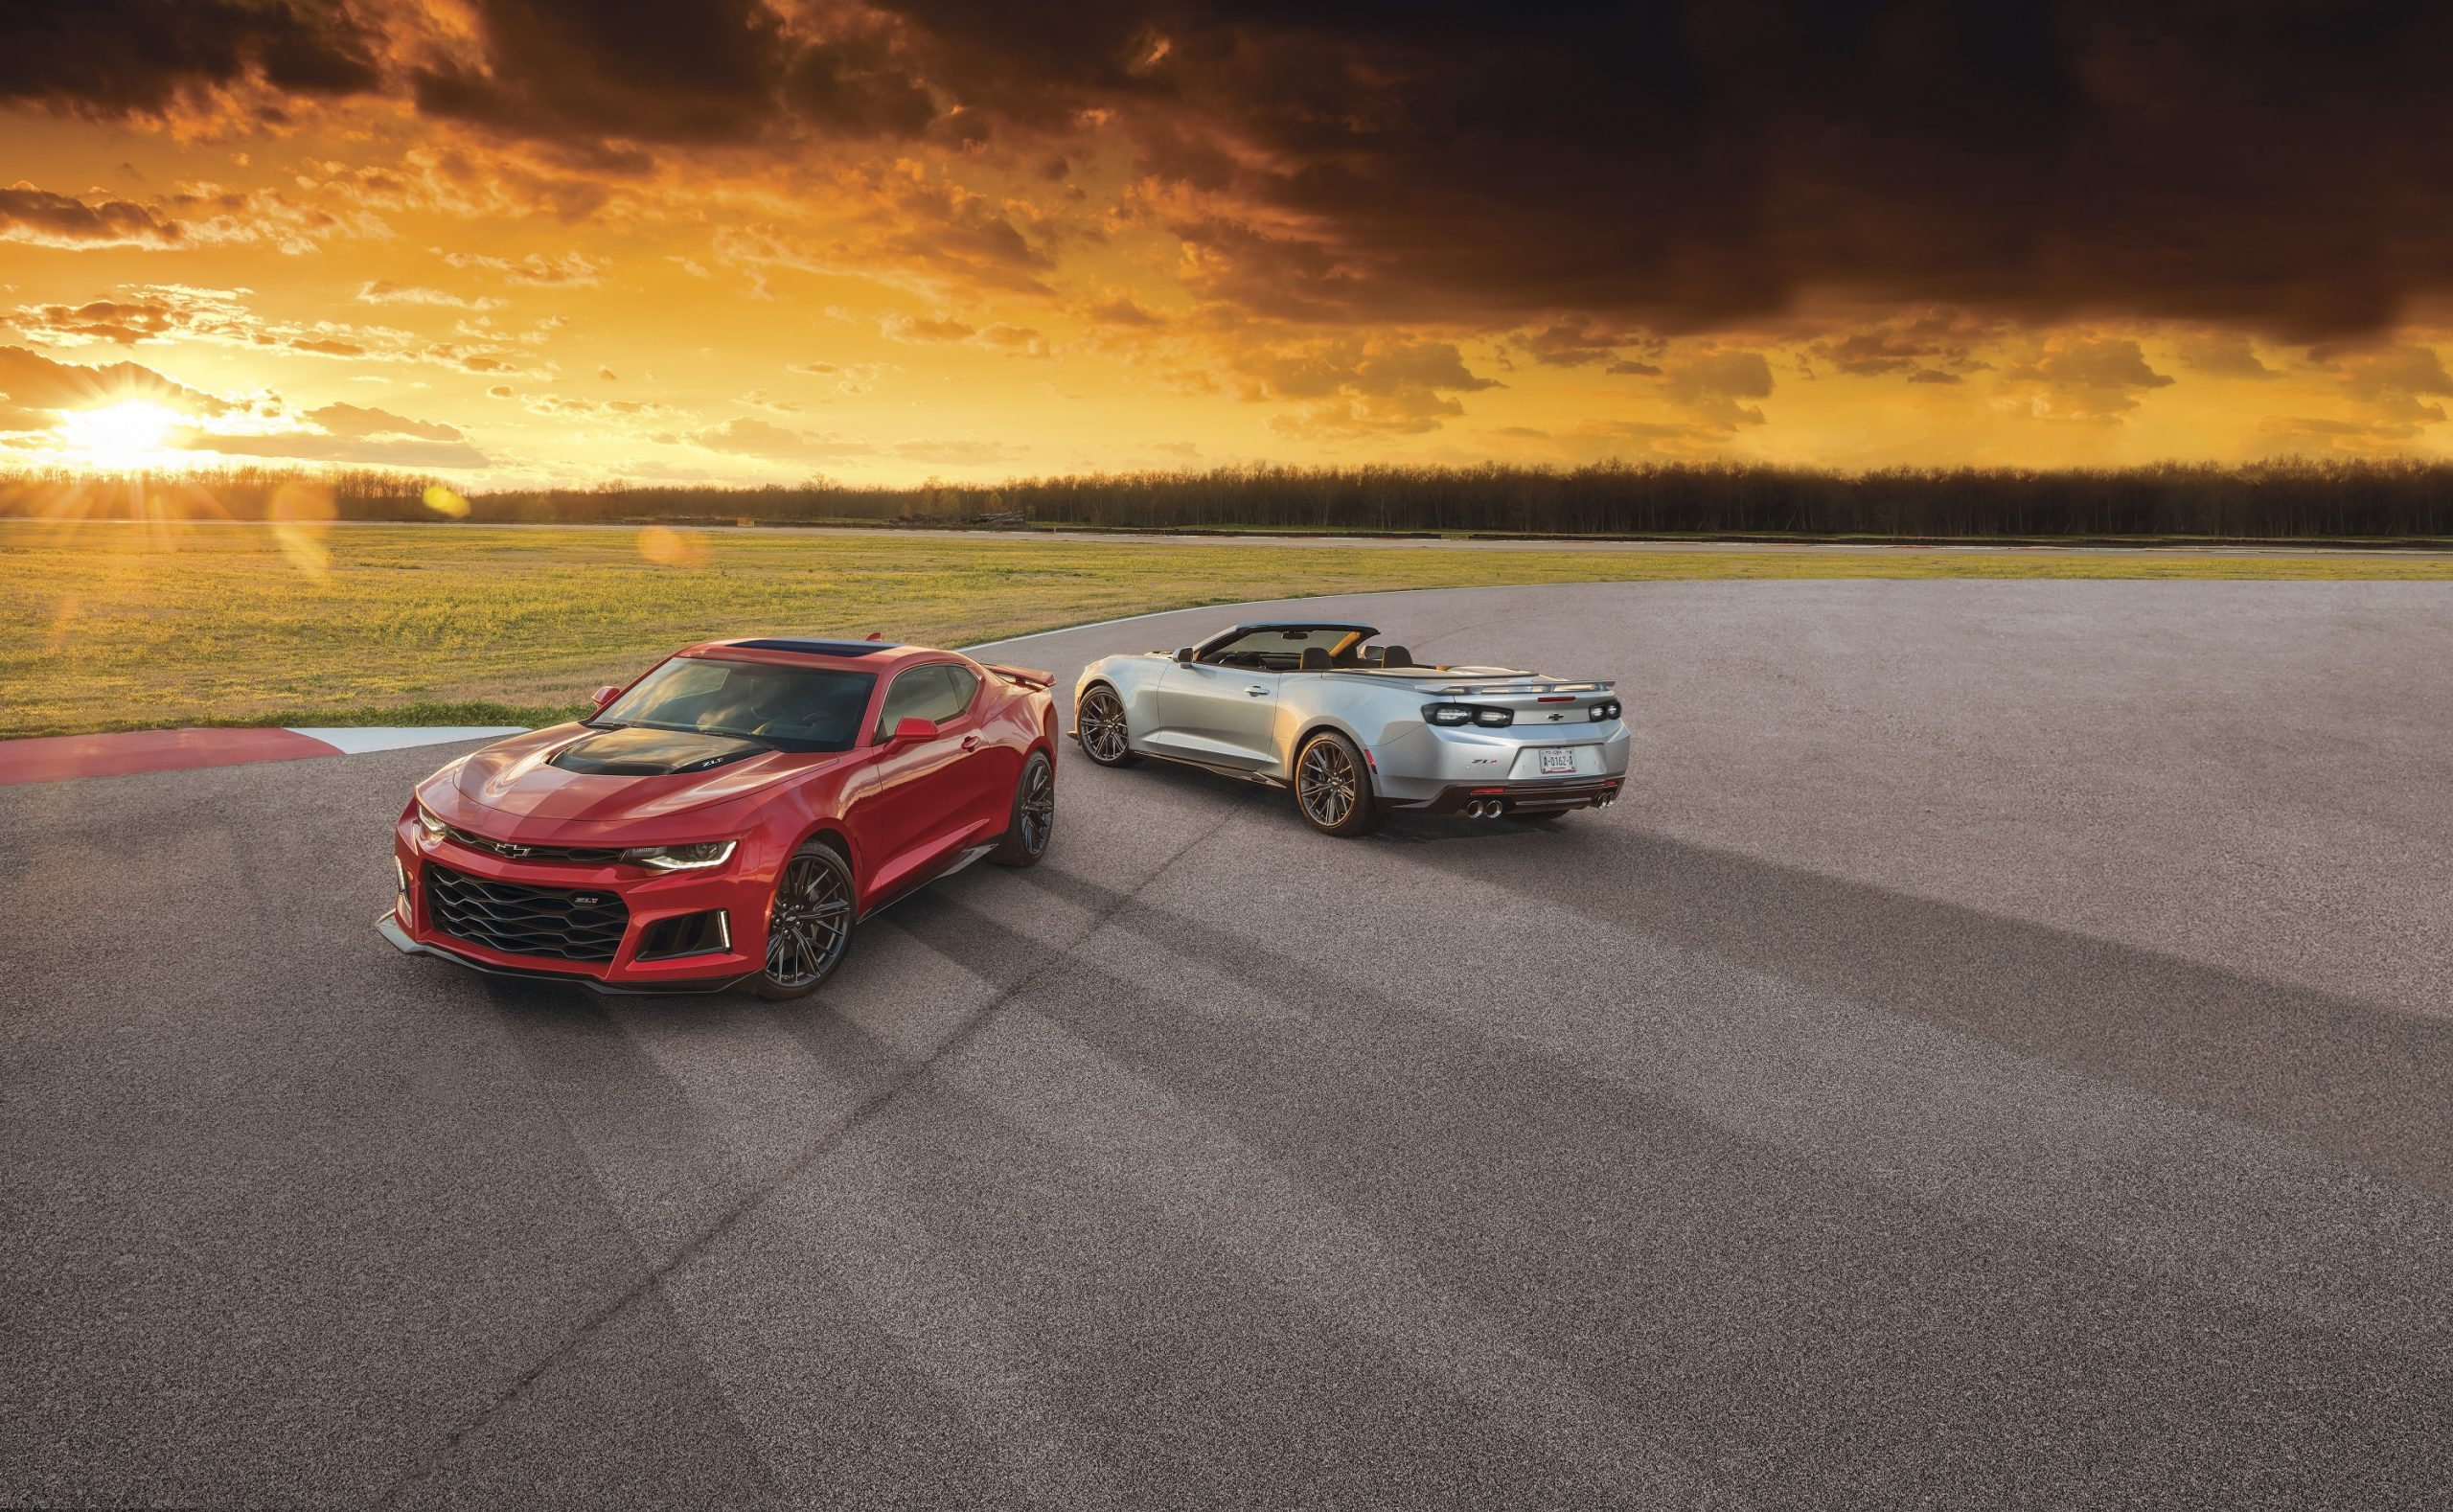 A red 2021 Chevrolet Camaro ZL1 coupe and convertible at sunset